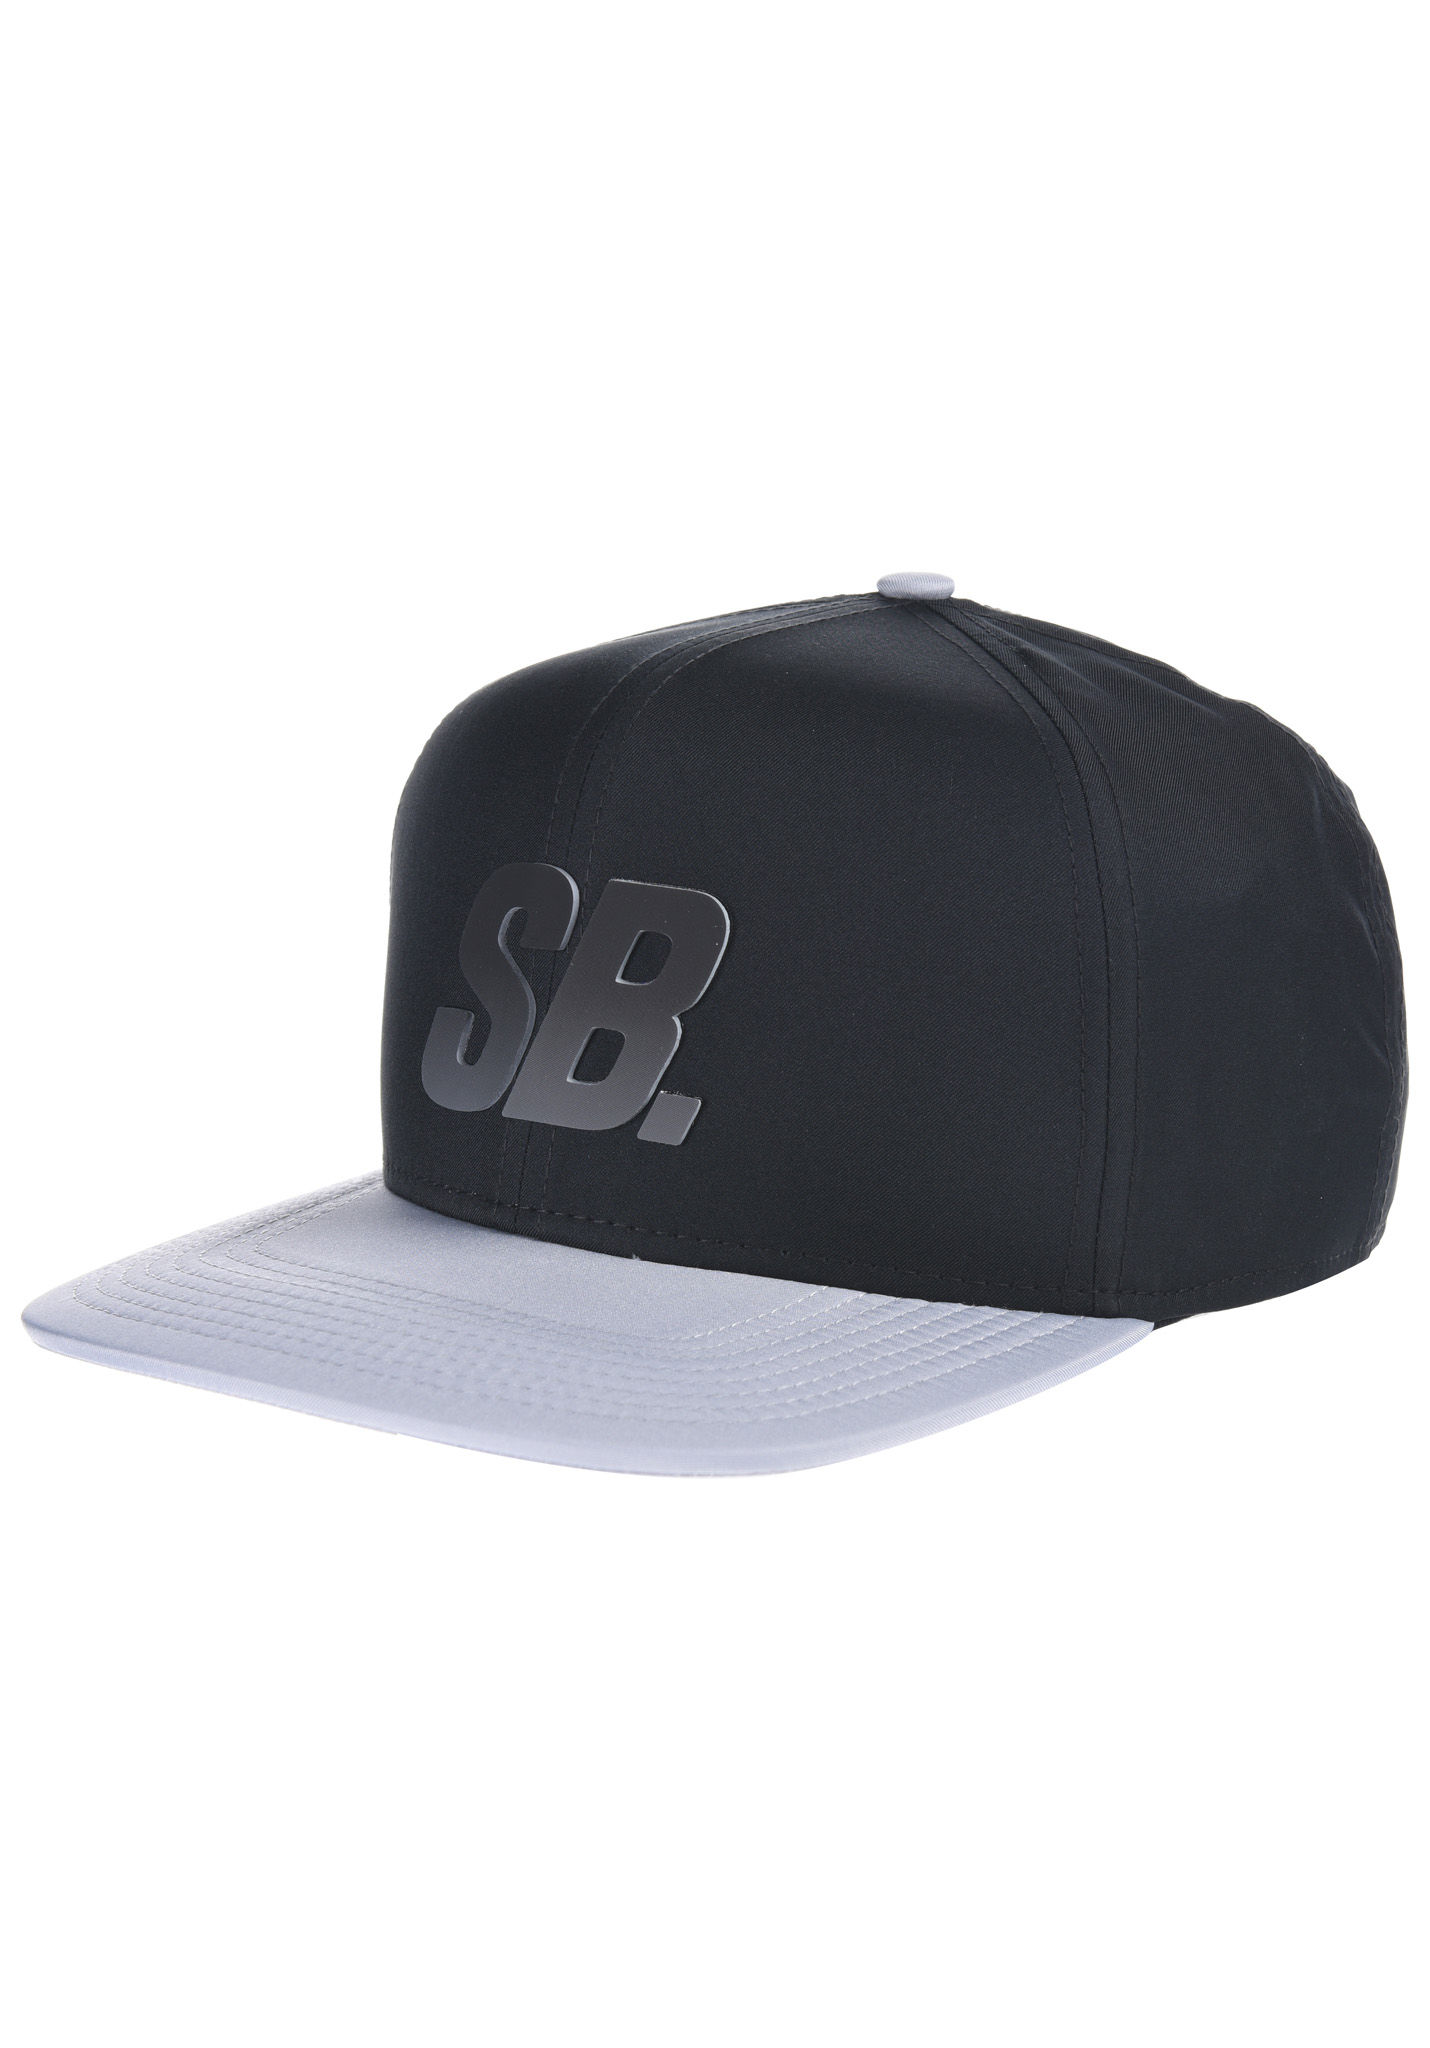 NIKE SB Fade Dri-Fit - Snapback Cap - Schwarz - Planet Sports